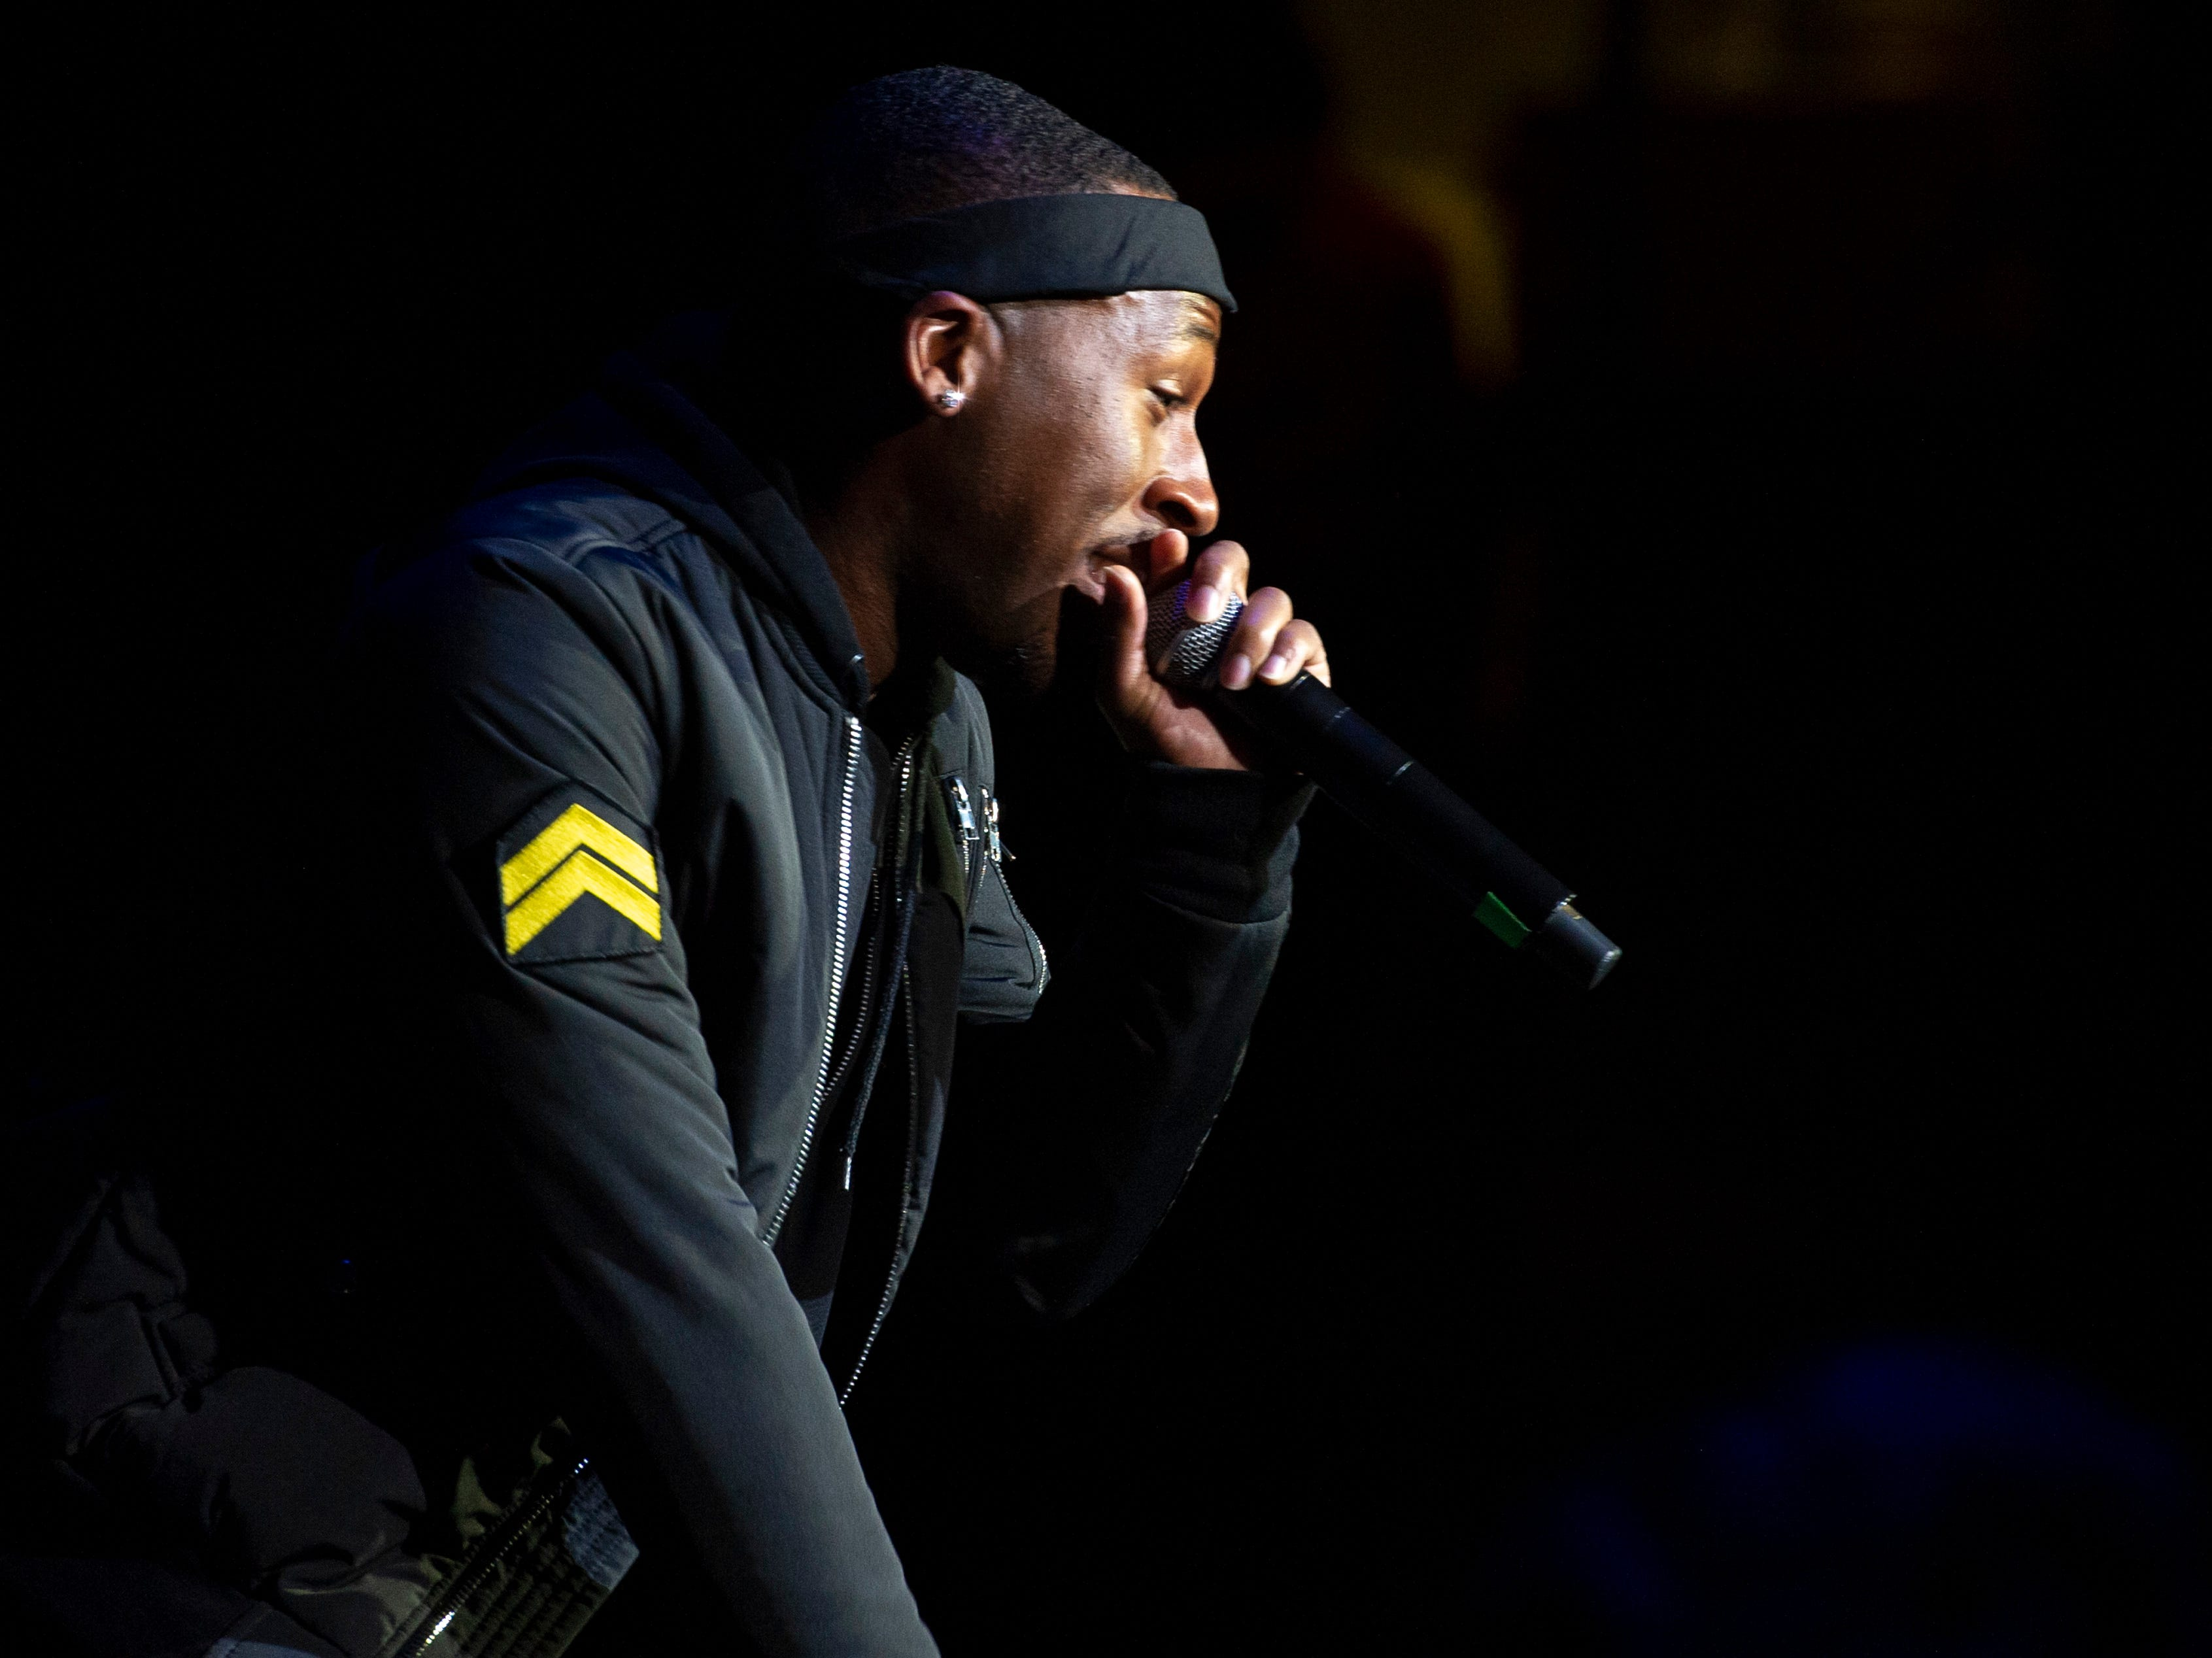 """Jonn Hart performs on stage. Radio stations Hot 96.3 and Radio Now 100.9 hosted the annual """"Santa Slam"""" concert, featuring American hip hop trio Migos, in the Indiana Farmers Coliseum at the Indiana State Fairgrounds in Indianapolis, Sunday, Dec. 9, 2018."""